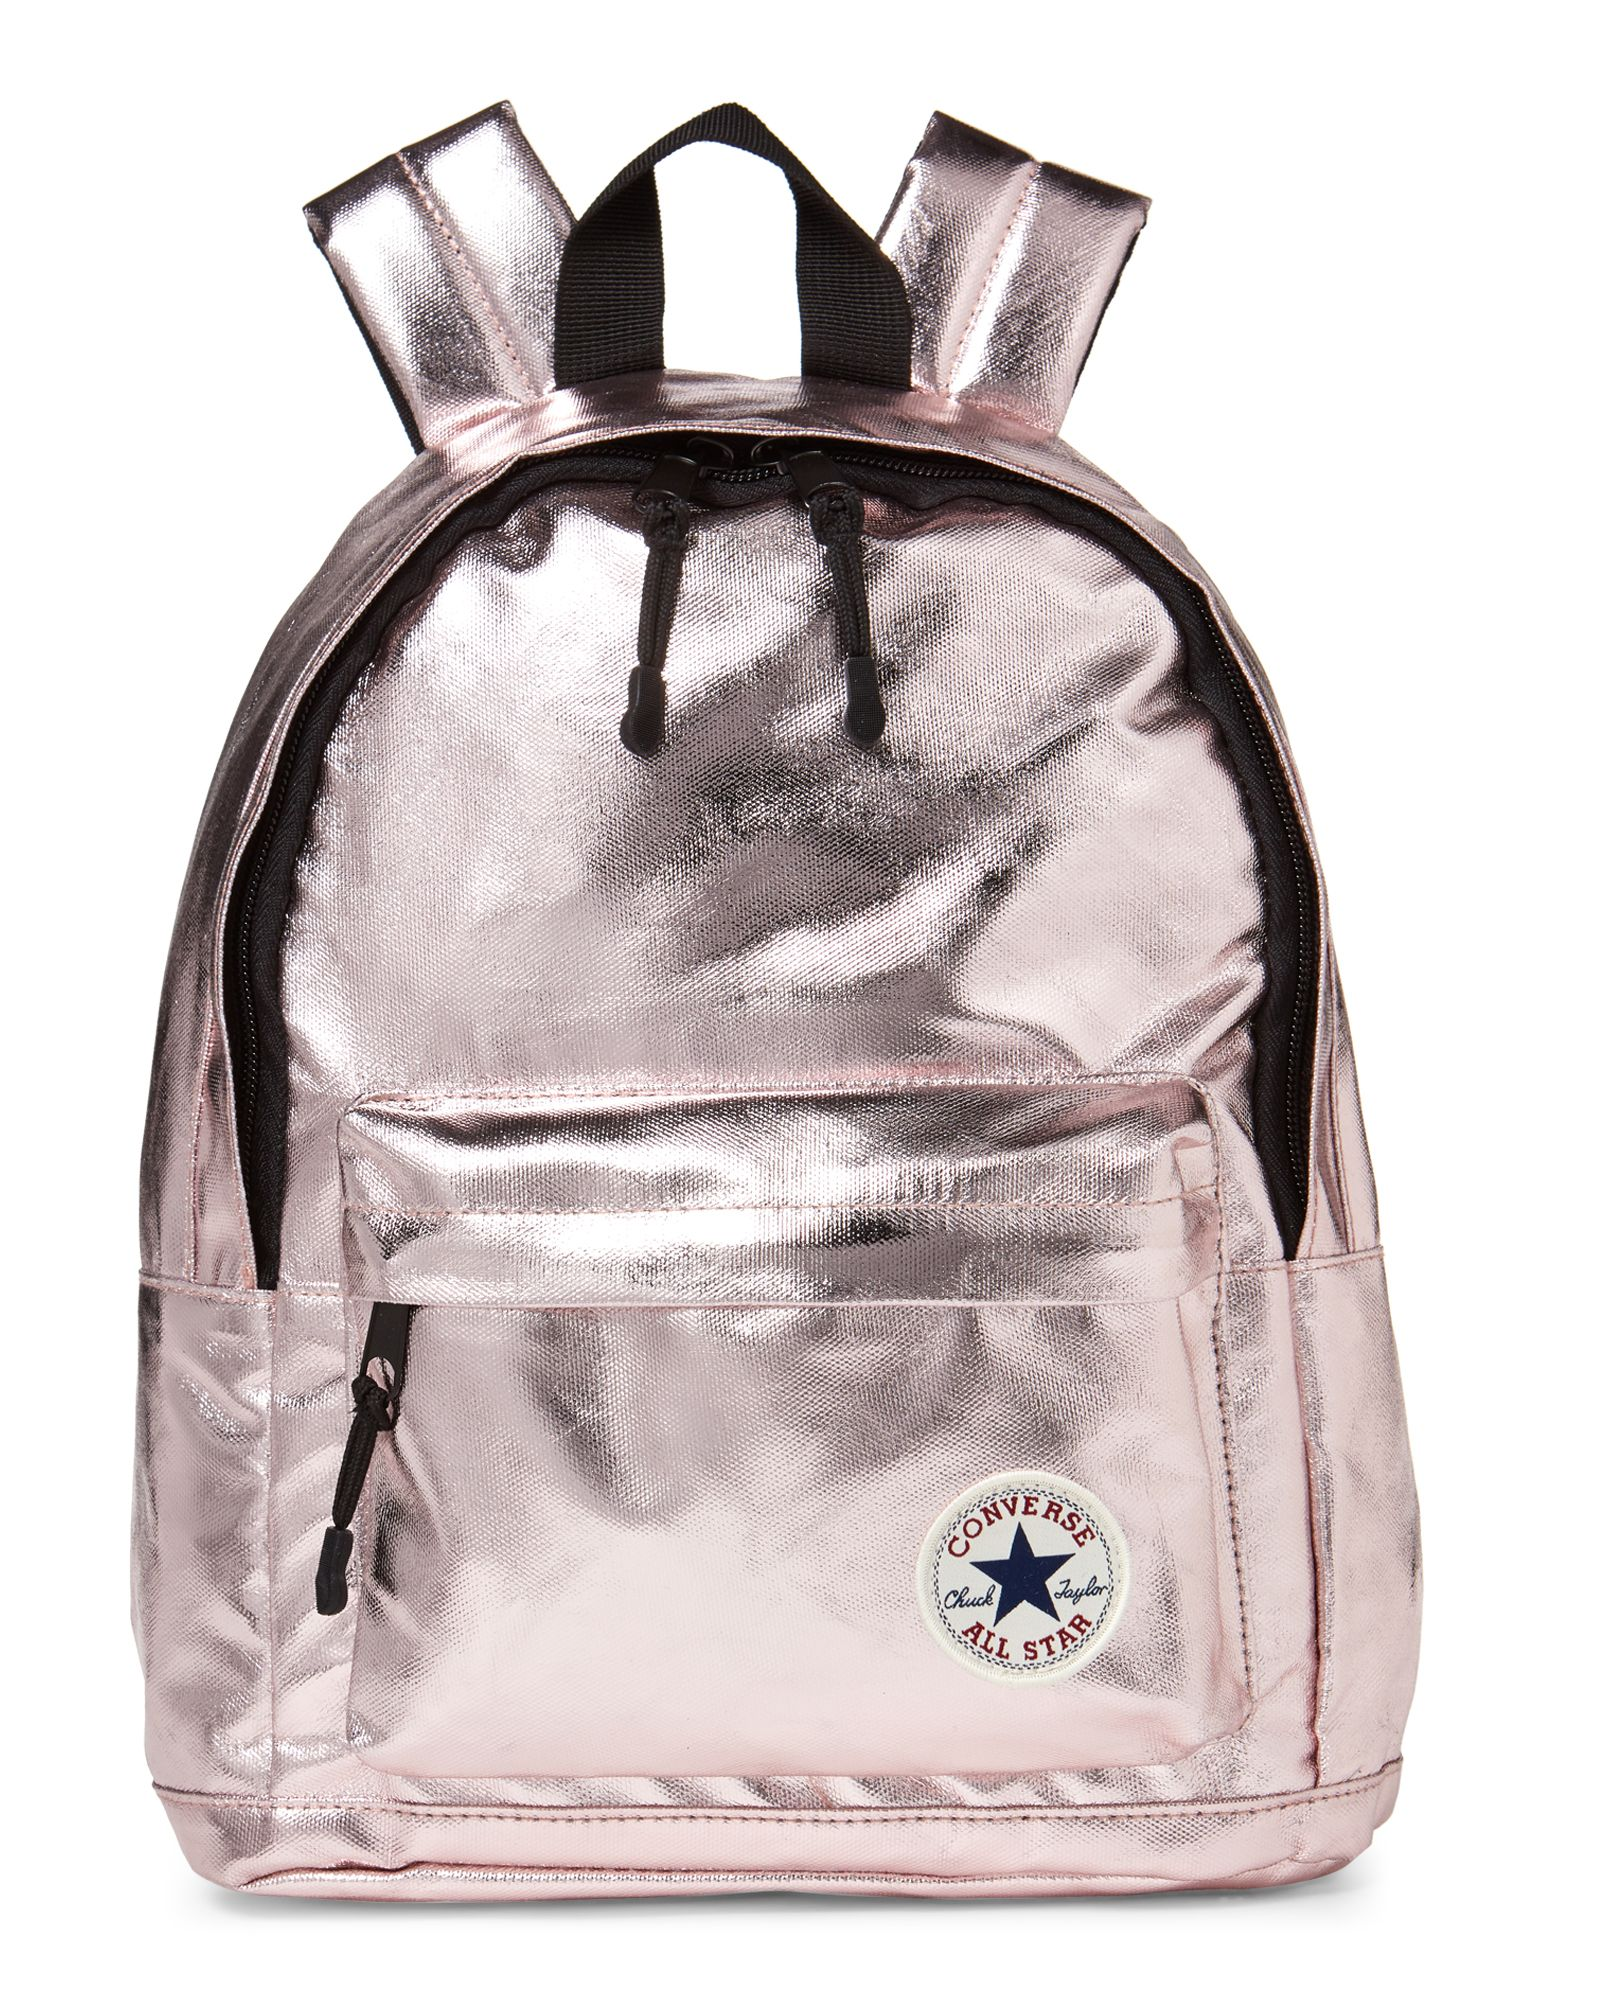 0ad3a3db6fc1 Converse (Girls) Metallic Rose Gold Mini Backpack